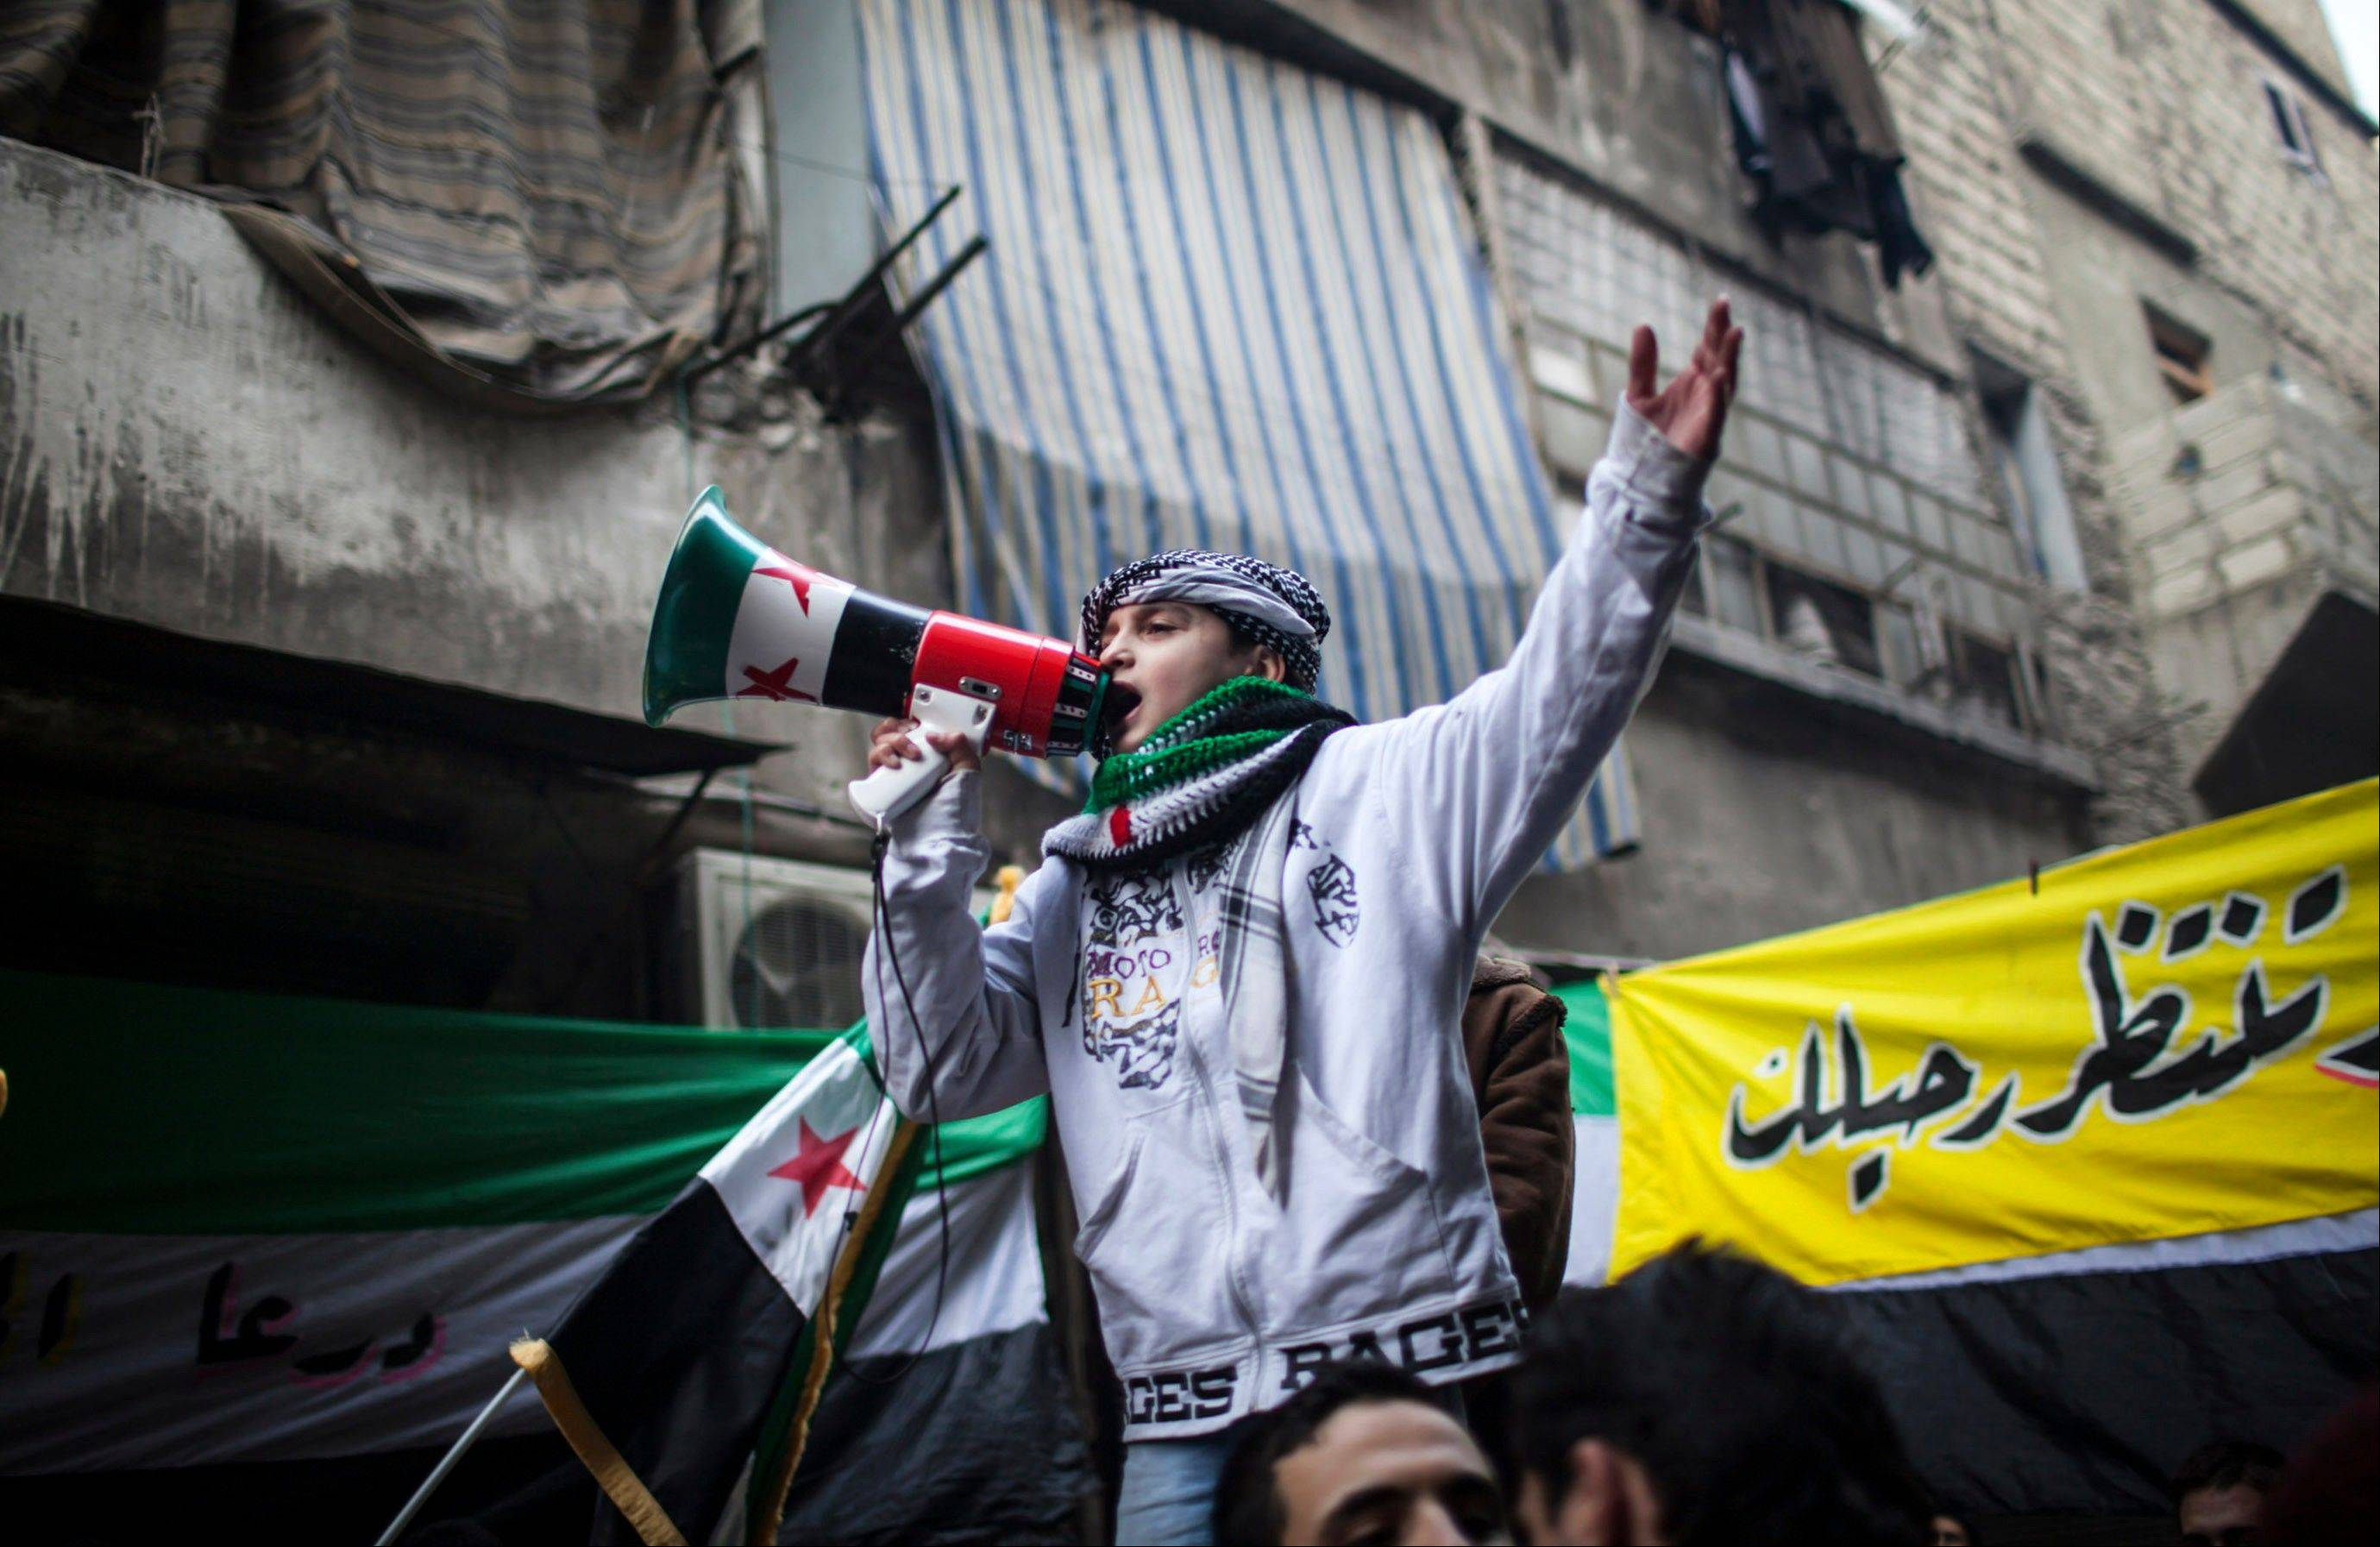 A child uses a megaphone Friday to lead others in chanting Free Syrian Army slogans during a demonstration in the neighborhood of Bustan Al-Qasr, Aleppo, Syria.